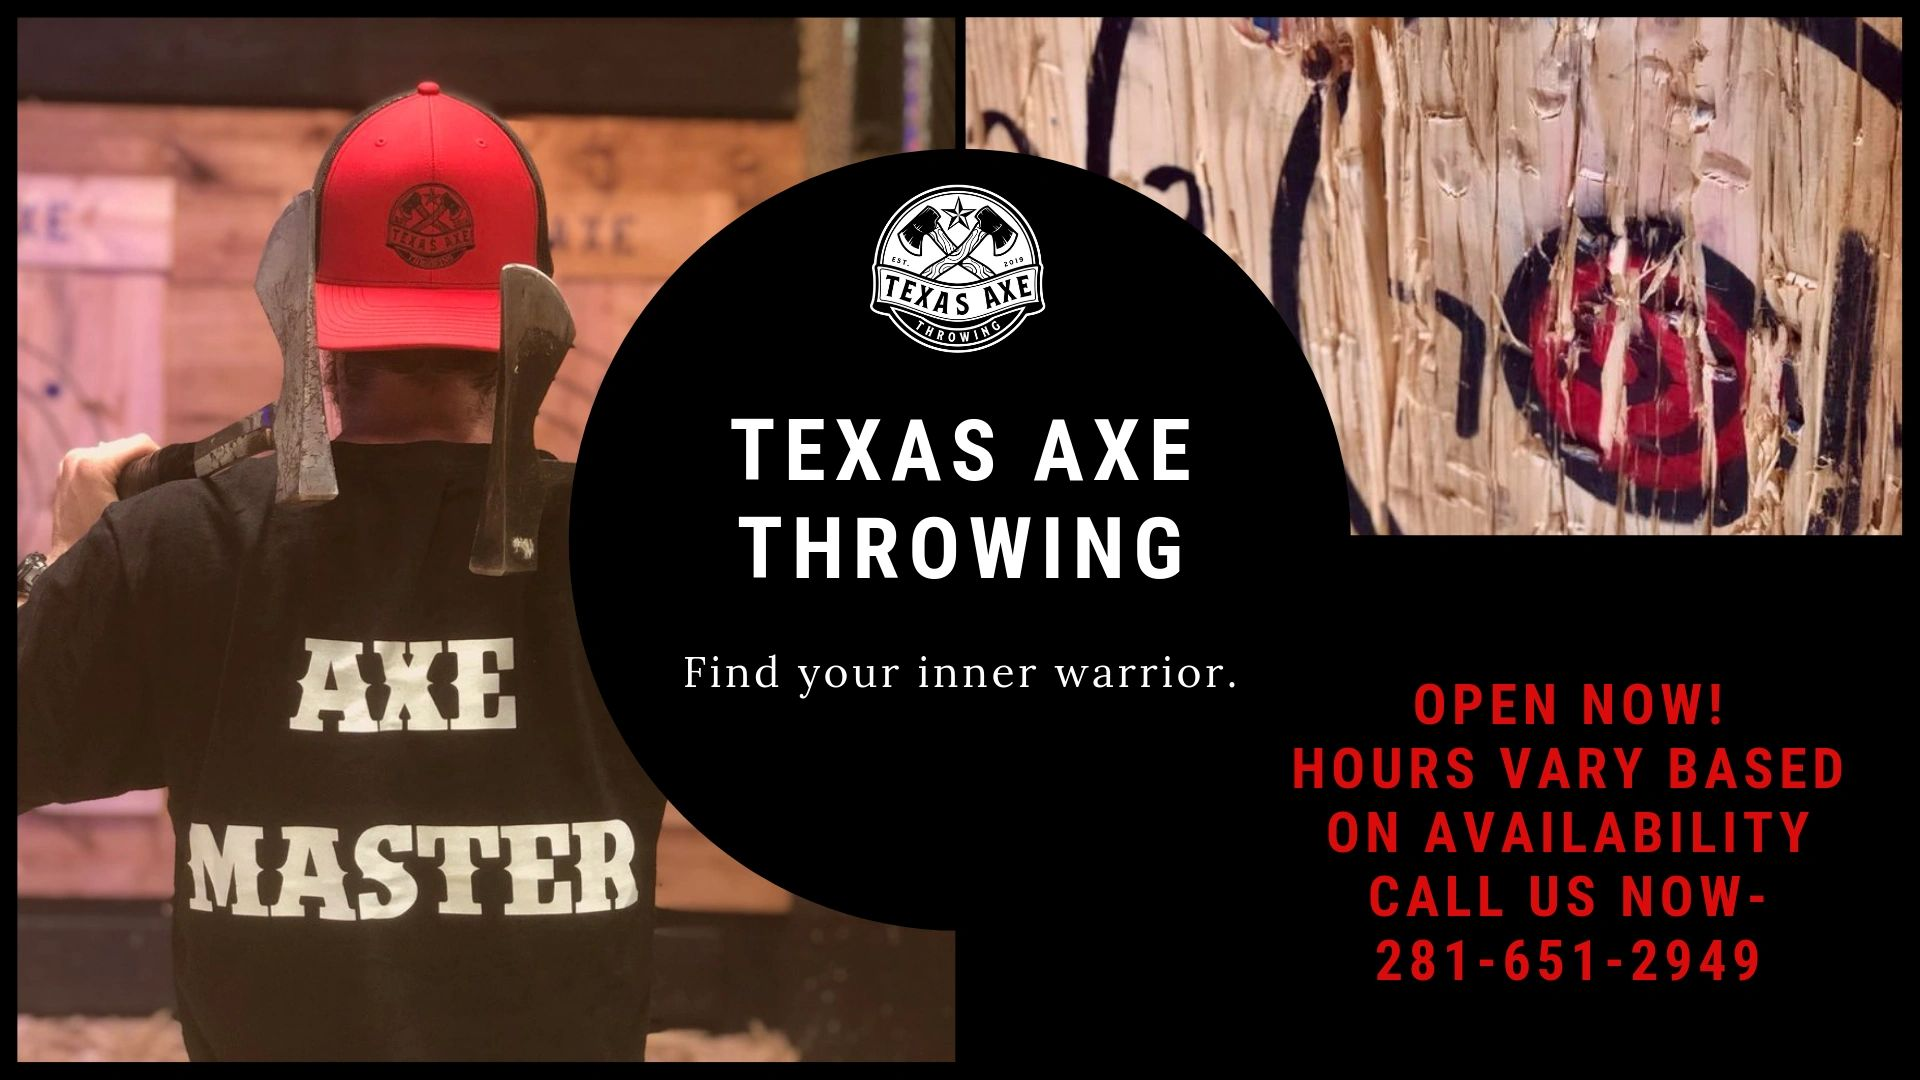 Texas Axe Throwing Inner Warrior Hours Based on Availability